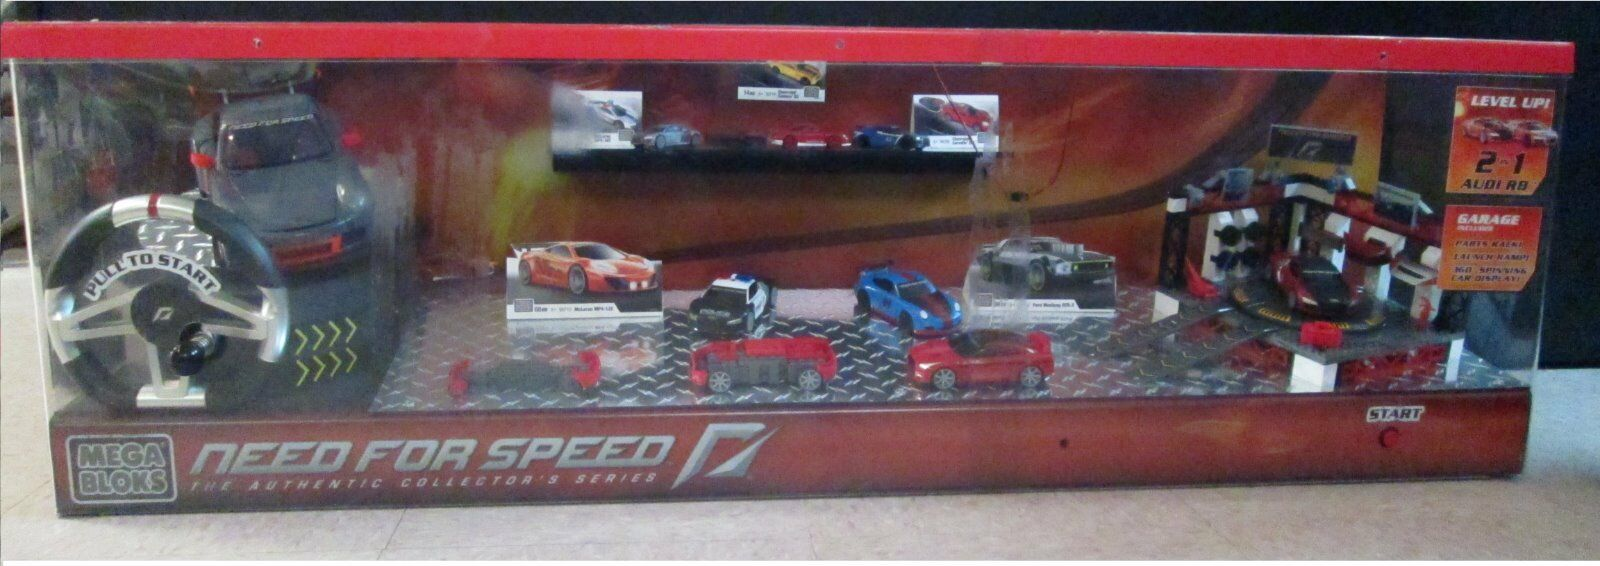 NEED FOR SPEED MEGA BLOKS WORKING STORE DISPLAY